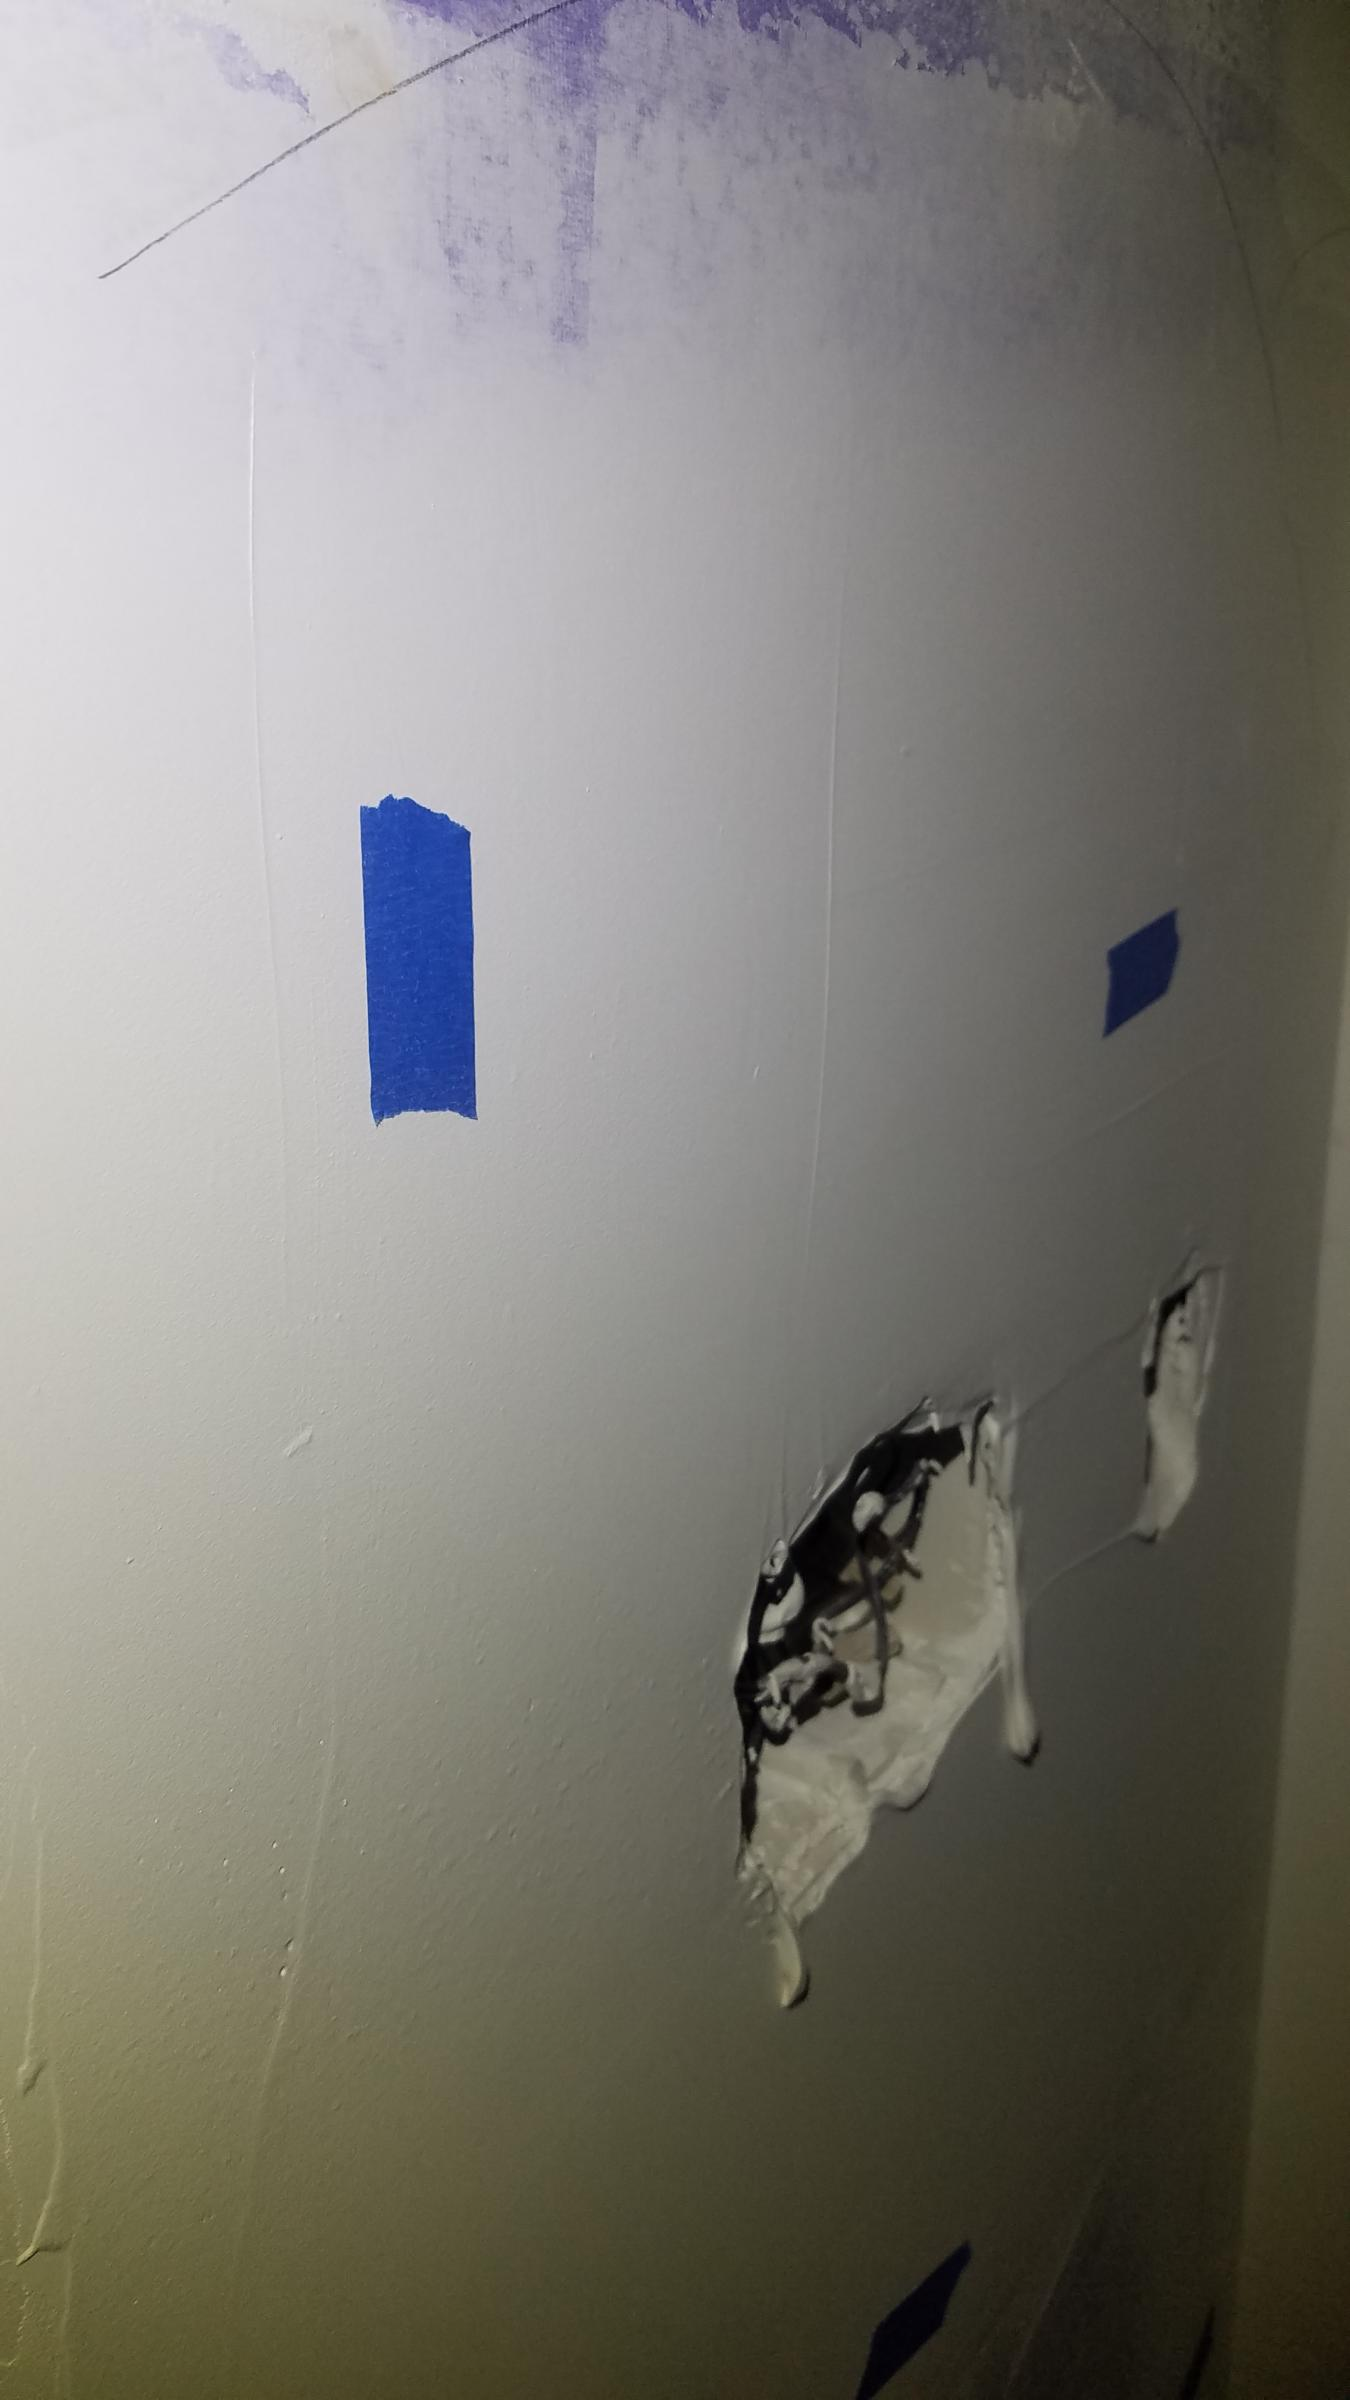 Are these normal blemishes after drywall finishing?-photostudio_1555805333935_1555806148921.jpg